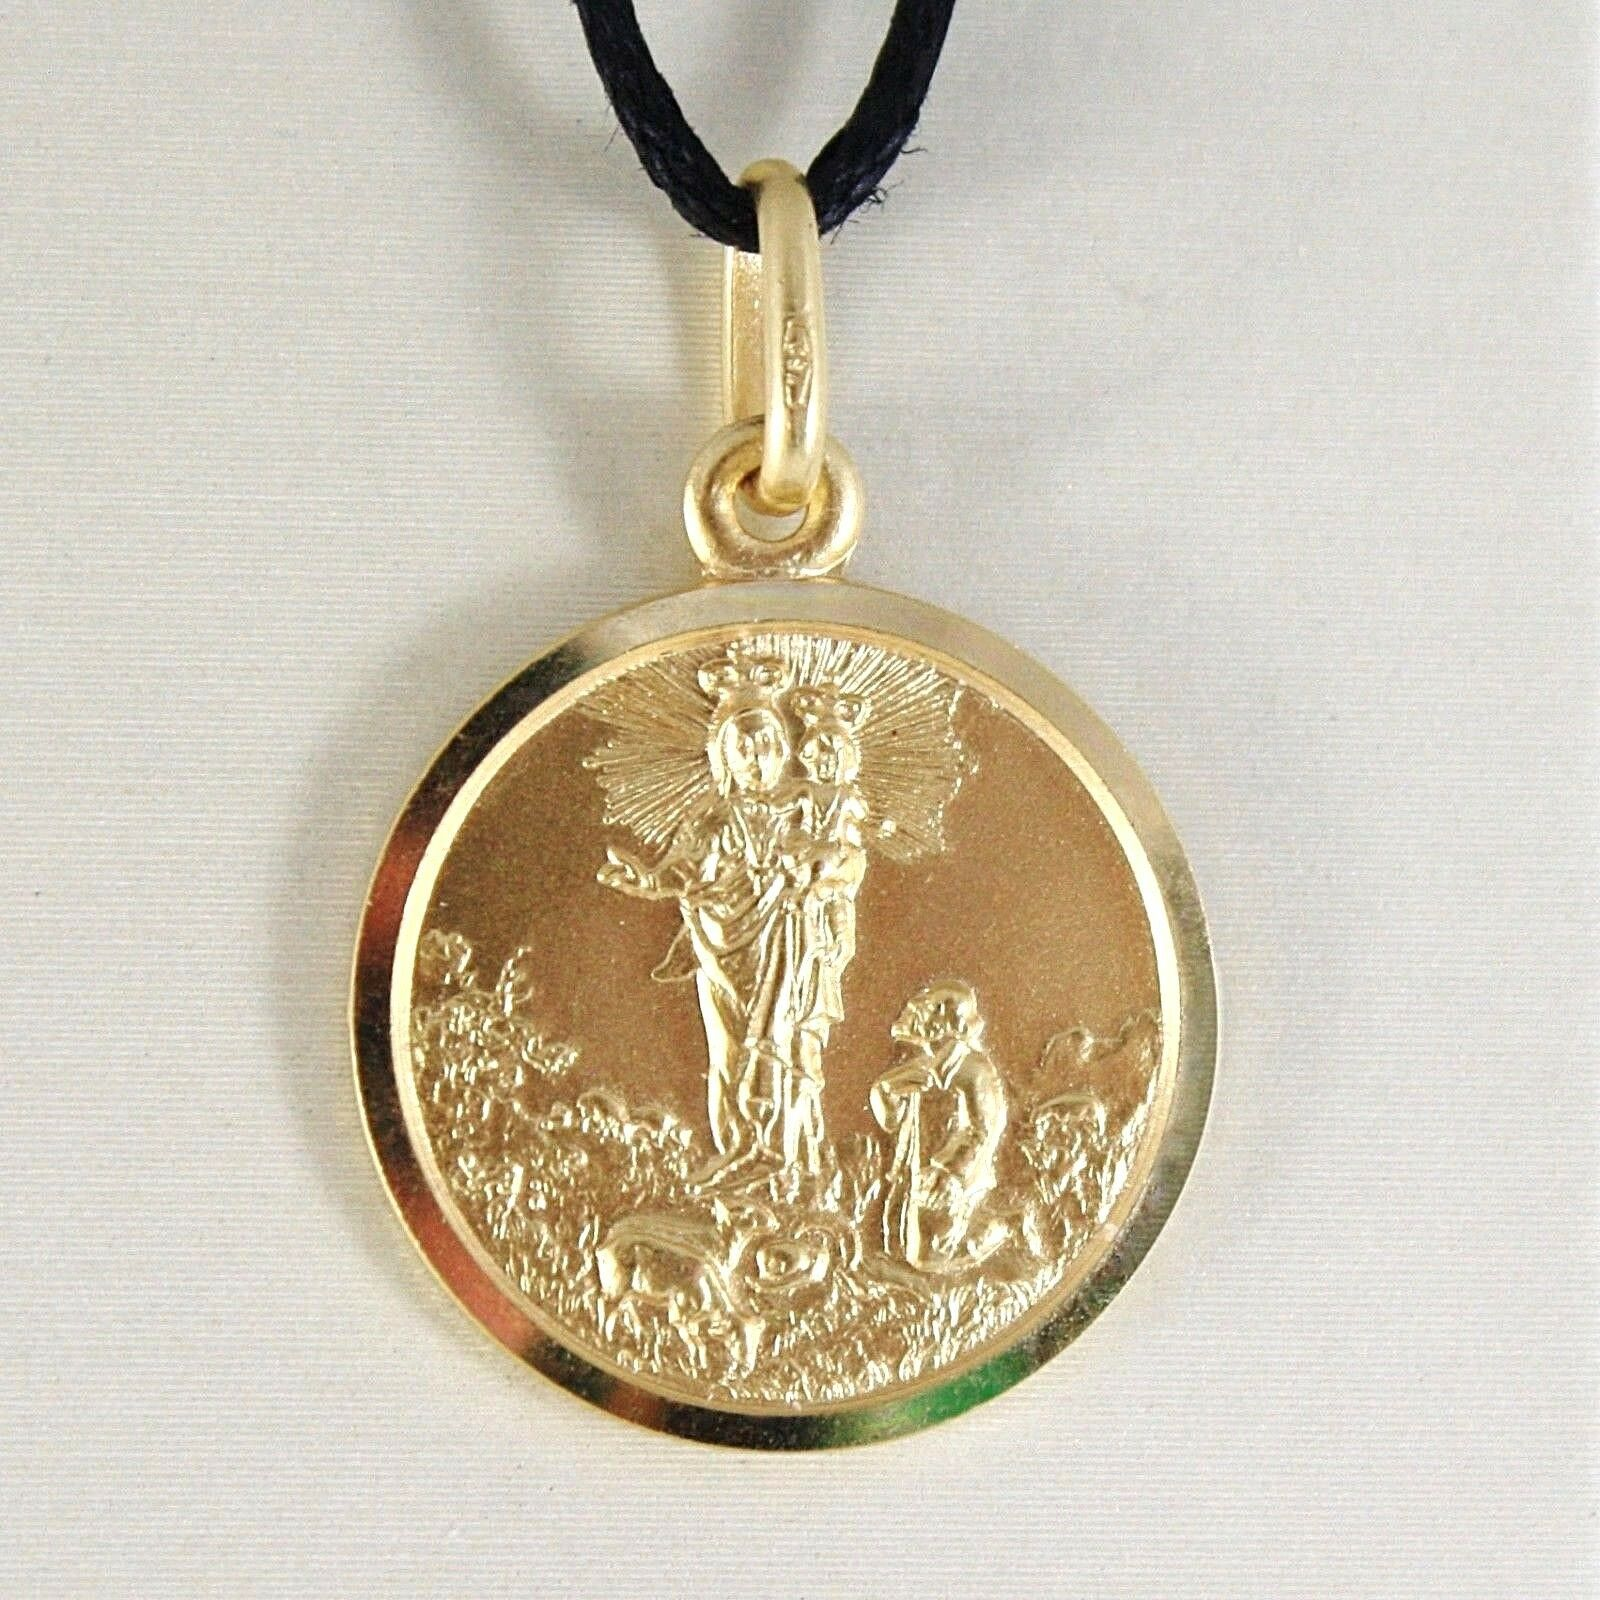 SOLID 18K YELLOW GOLD OUR MARY LADY OF THE GUARD 15 MM ROUND MEDAL MADE IN ITALY